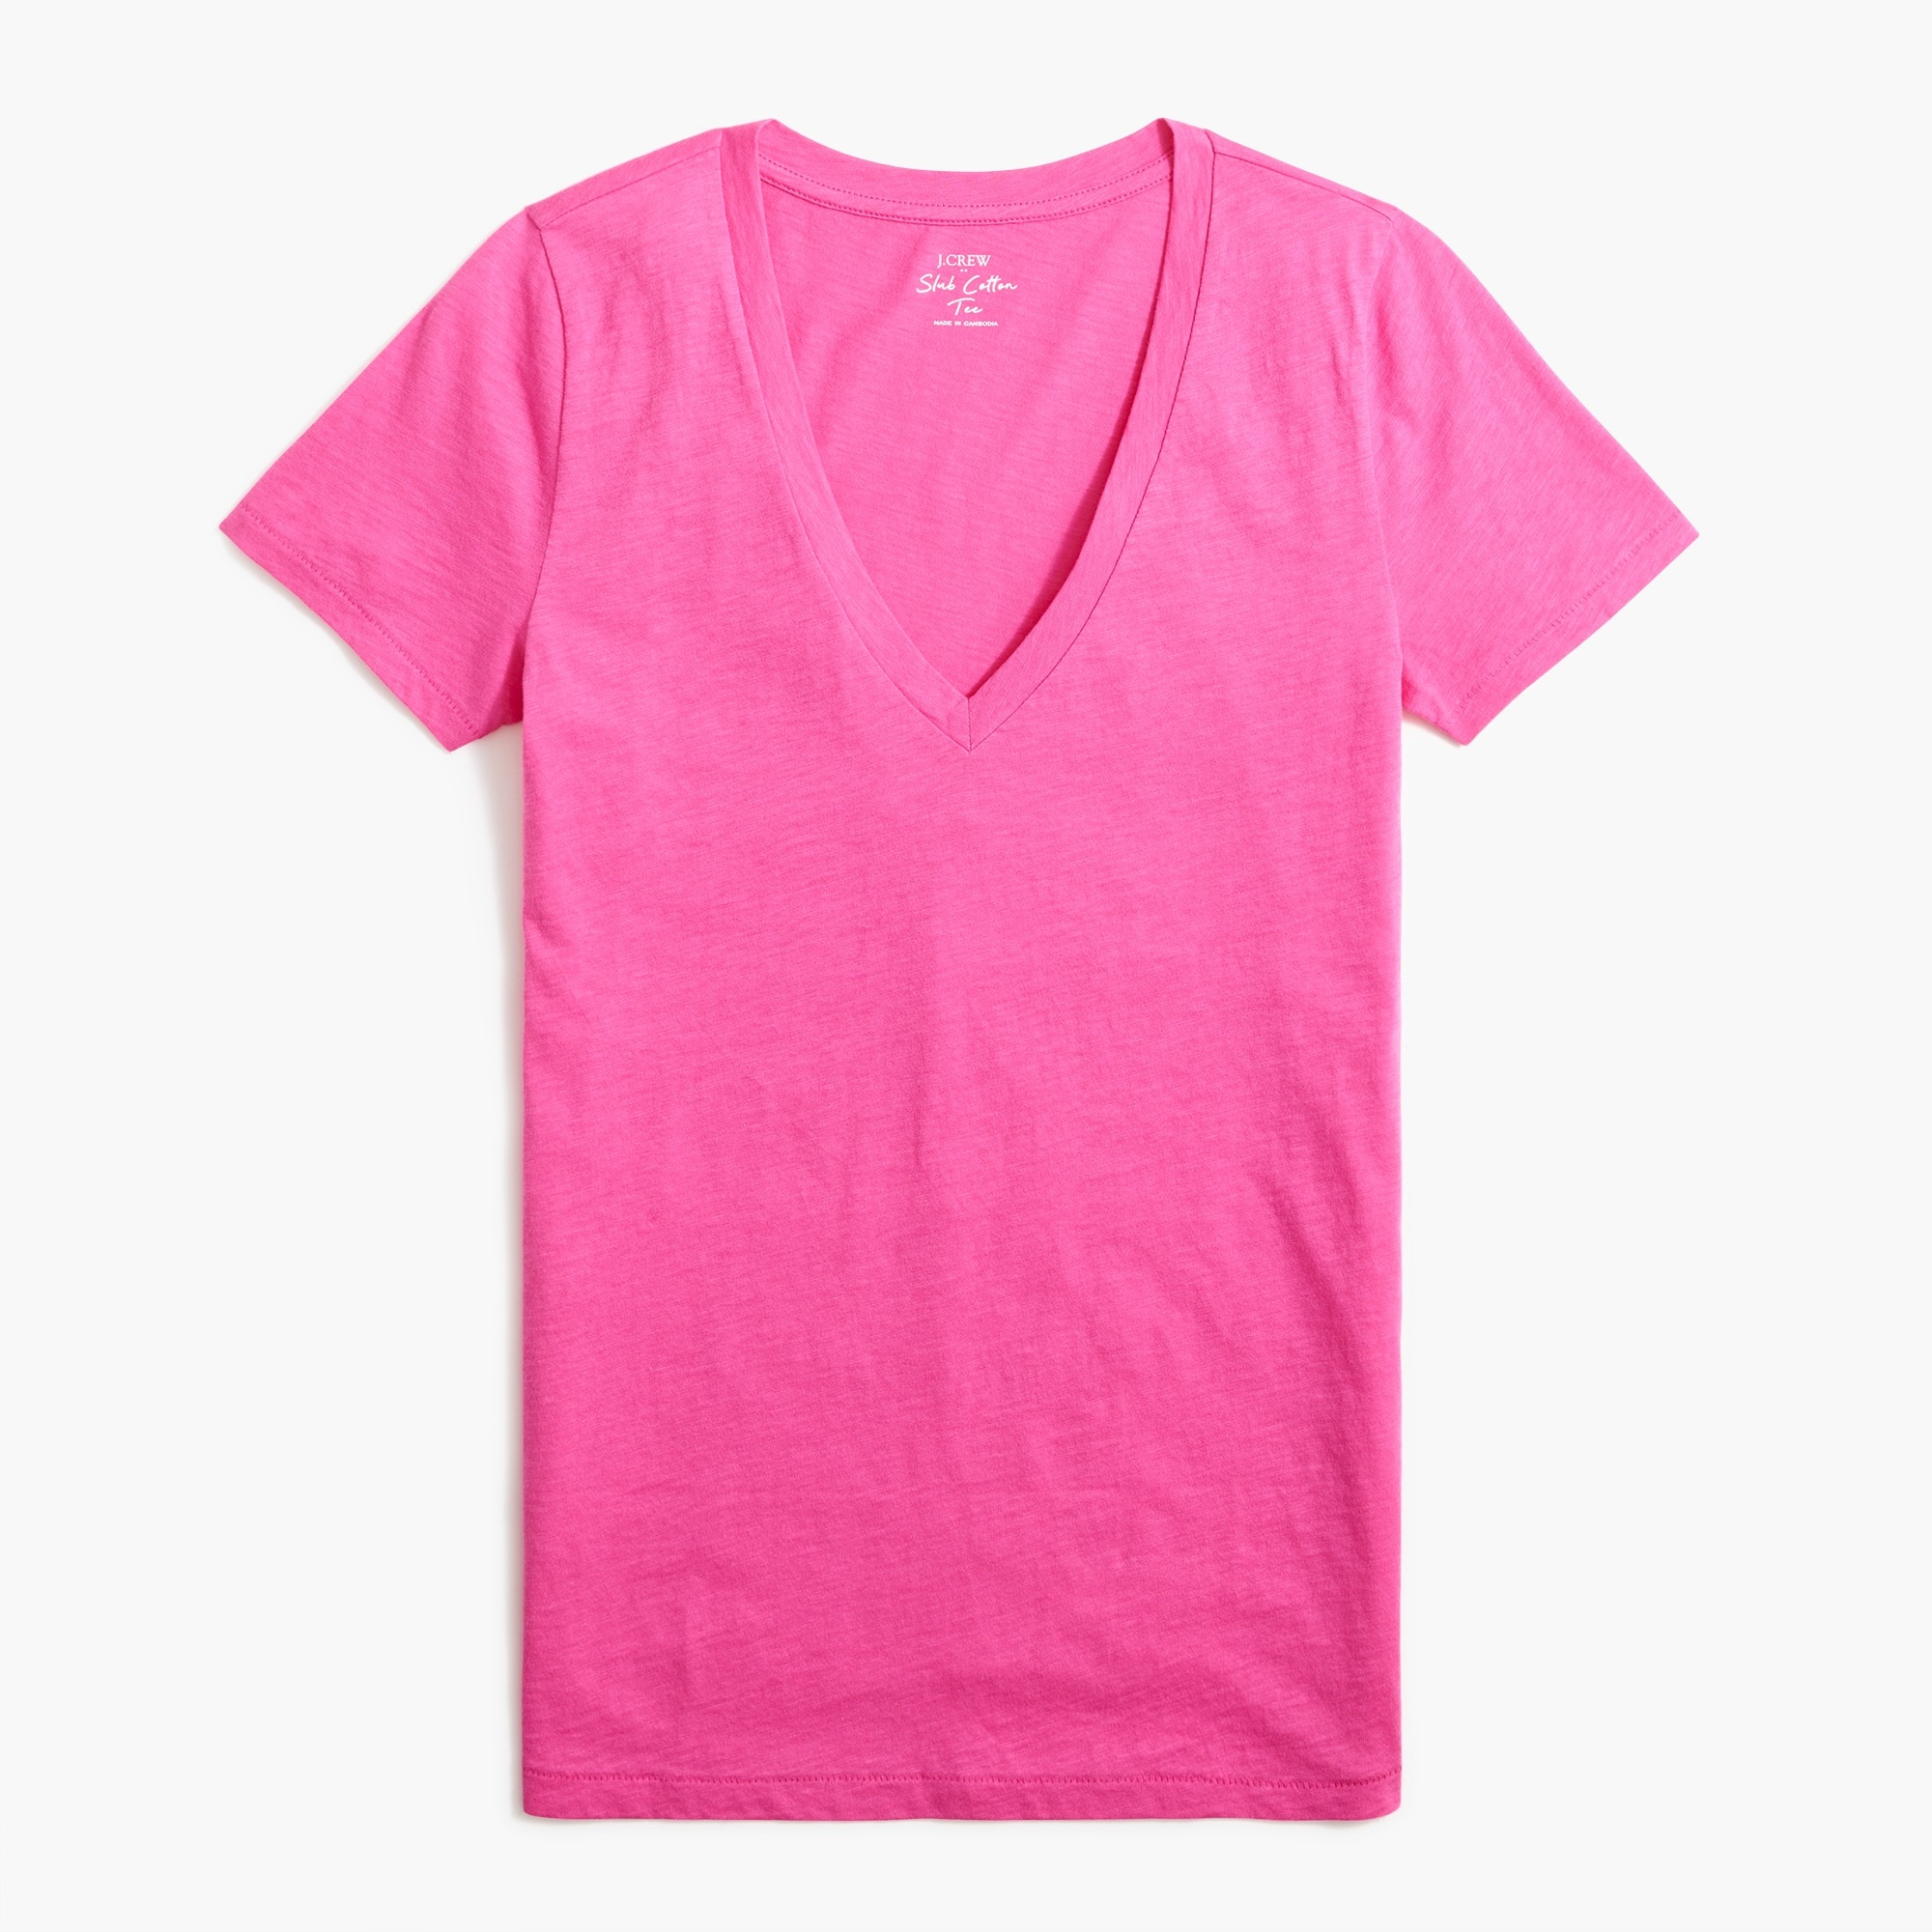 J.Crew Mercantile Featherweight Slub Cotton T-shirt factorywomen new arrivals c